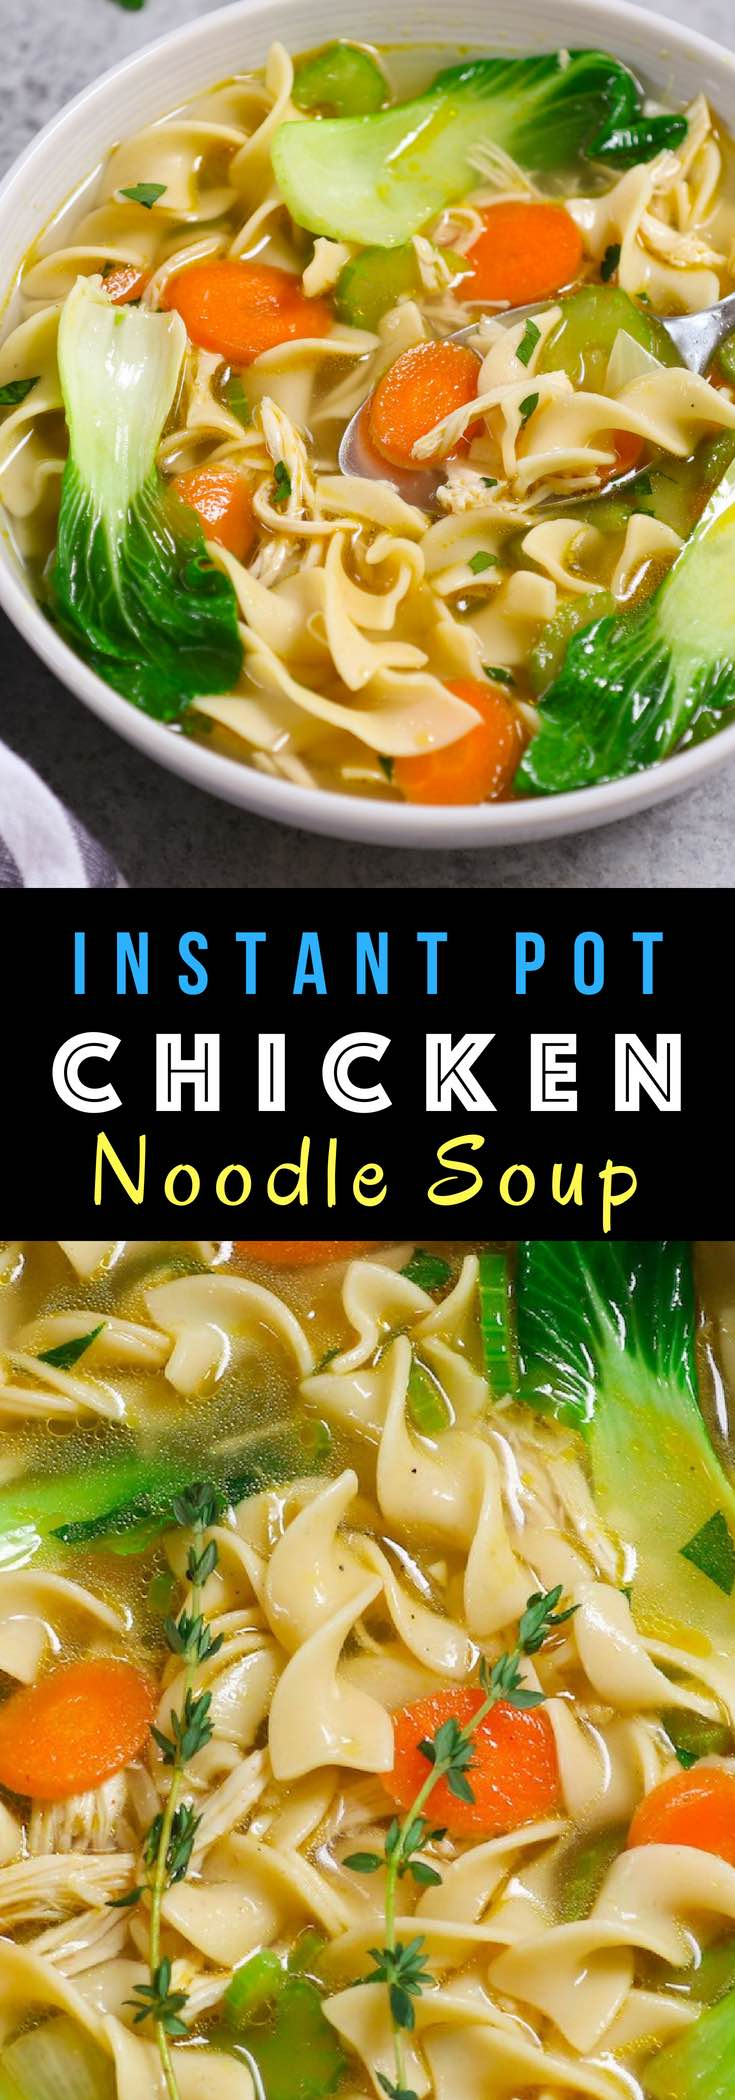 Delicious and comforting Instant Pot Chicken Noodle Soup - loaded with tender chicken, delicious noodles and nutritious vegetables. Best of all, it takes only 30 minutes when made from scratch! #InstantPot #ChickenNoodleSoup